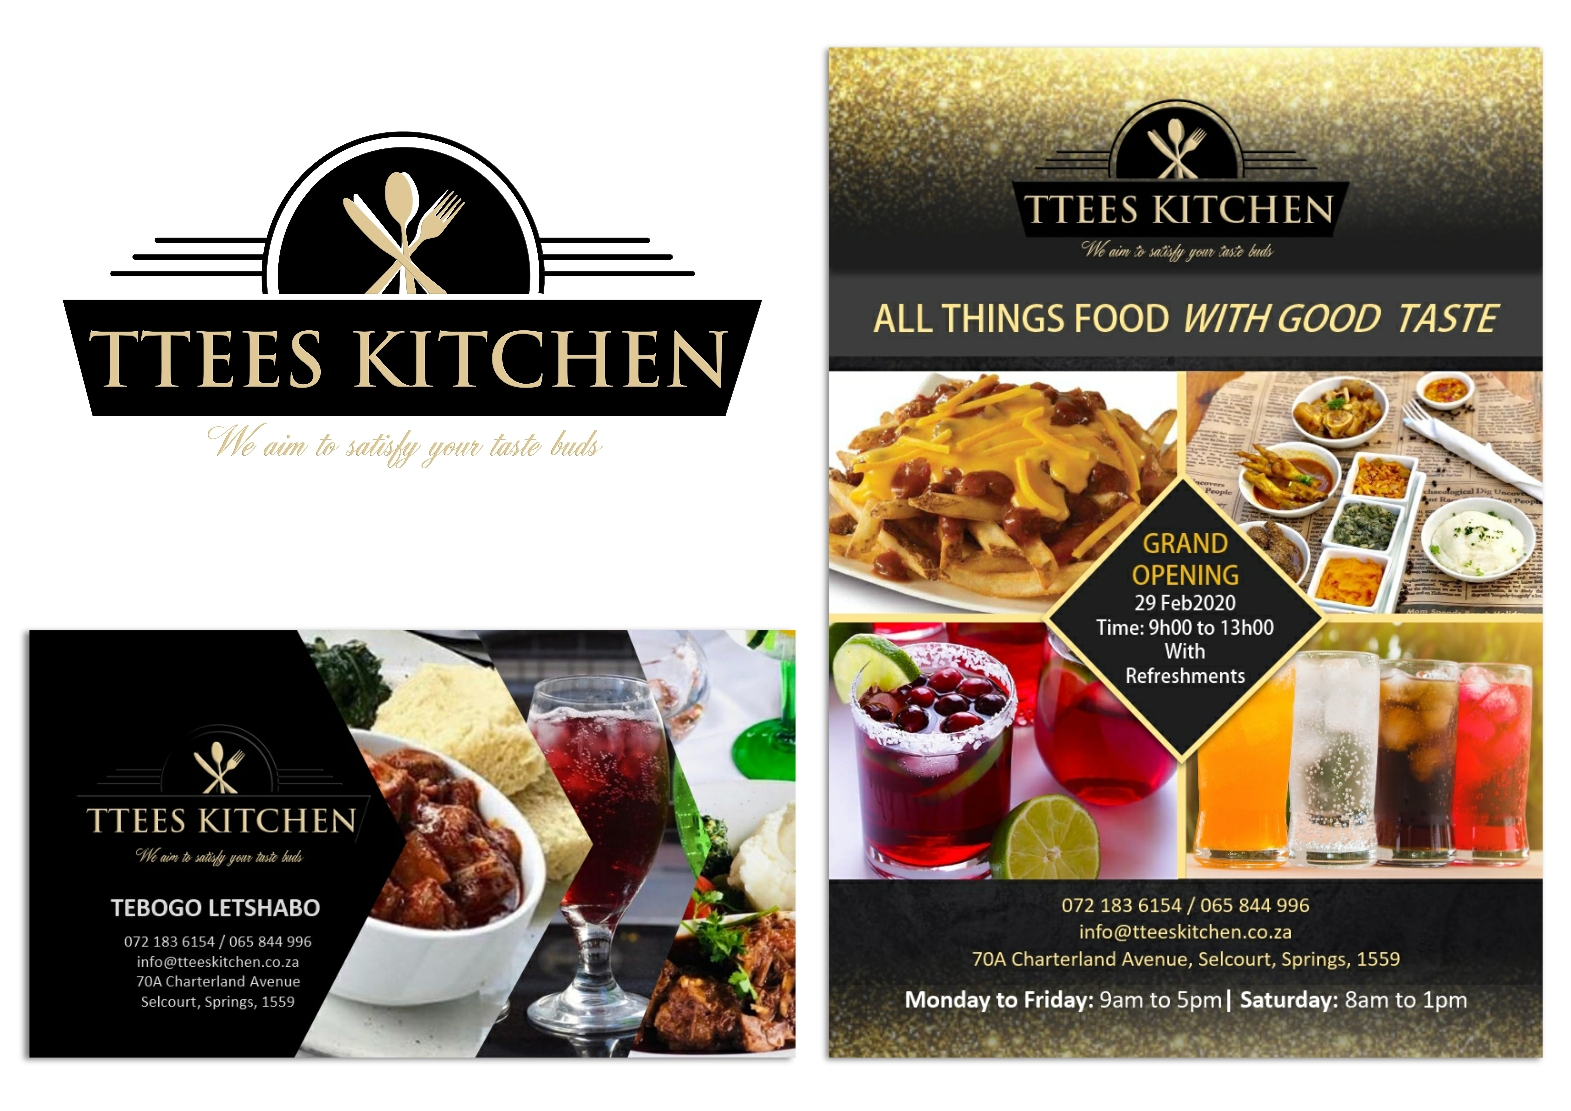 Ttees kitchen restuarant branding design set 1 by Kubumedia Pretoria